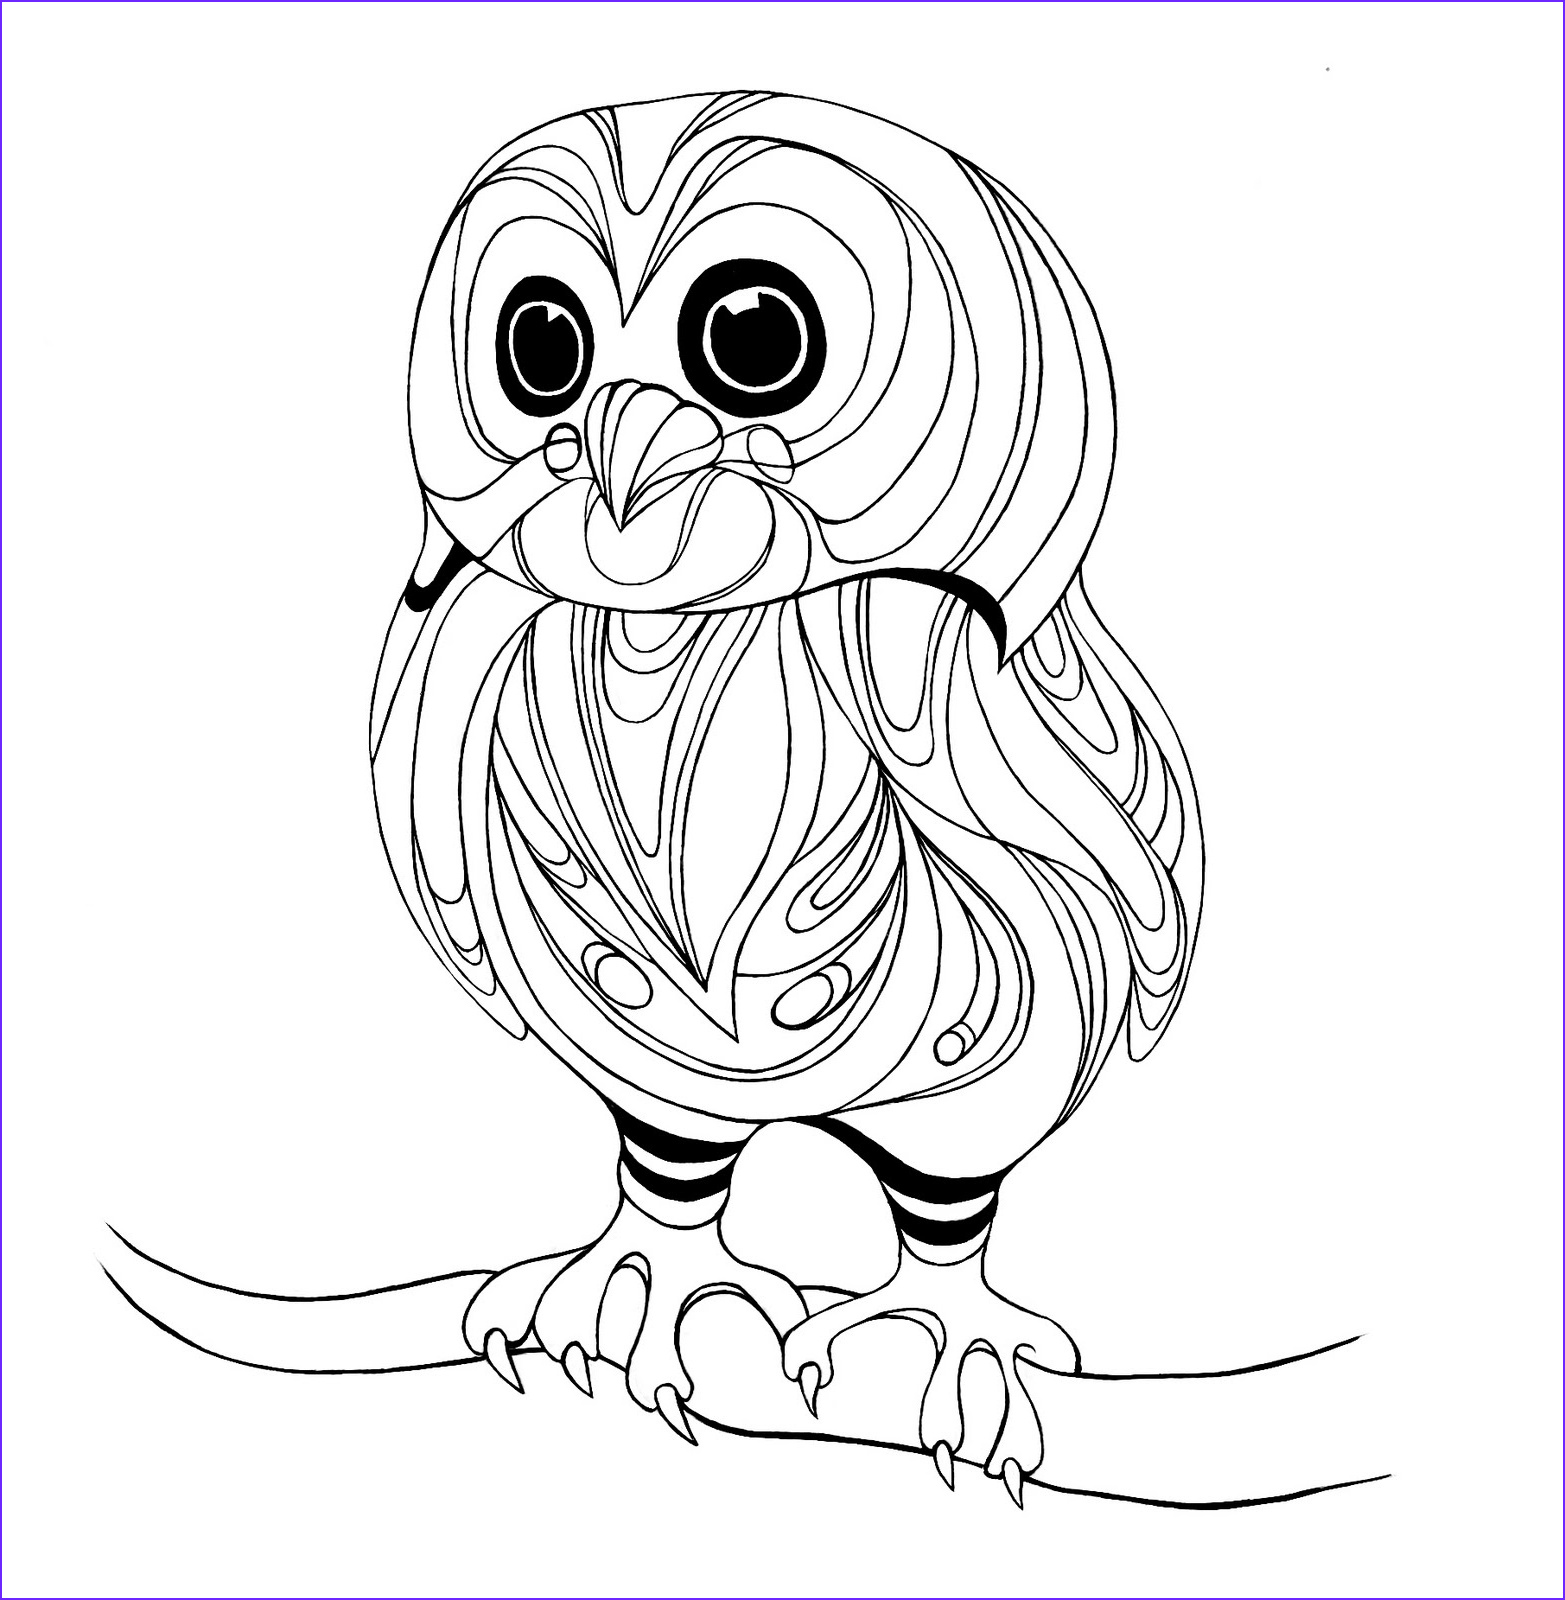 Free Printable Owl Coloring Pages Best Of Stock Owls to Color On Pinterest